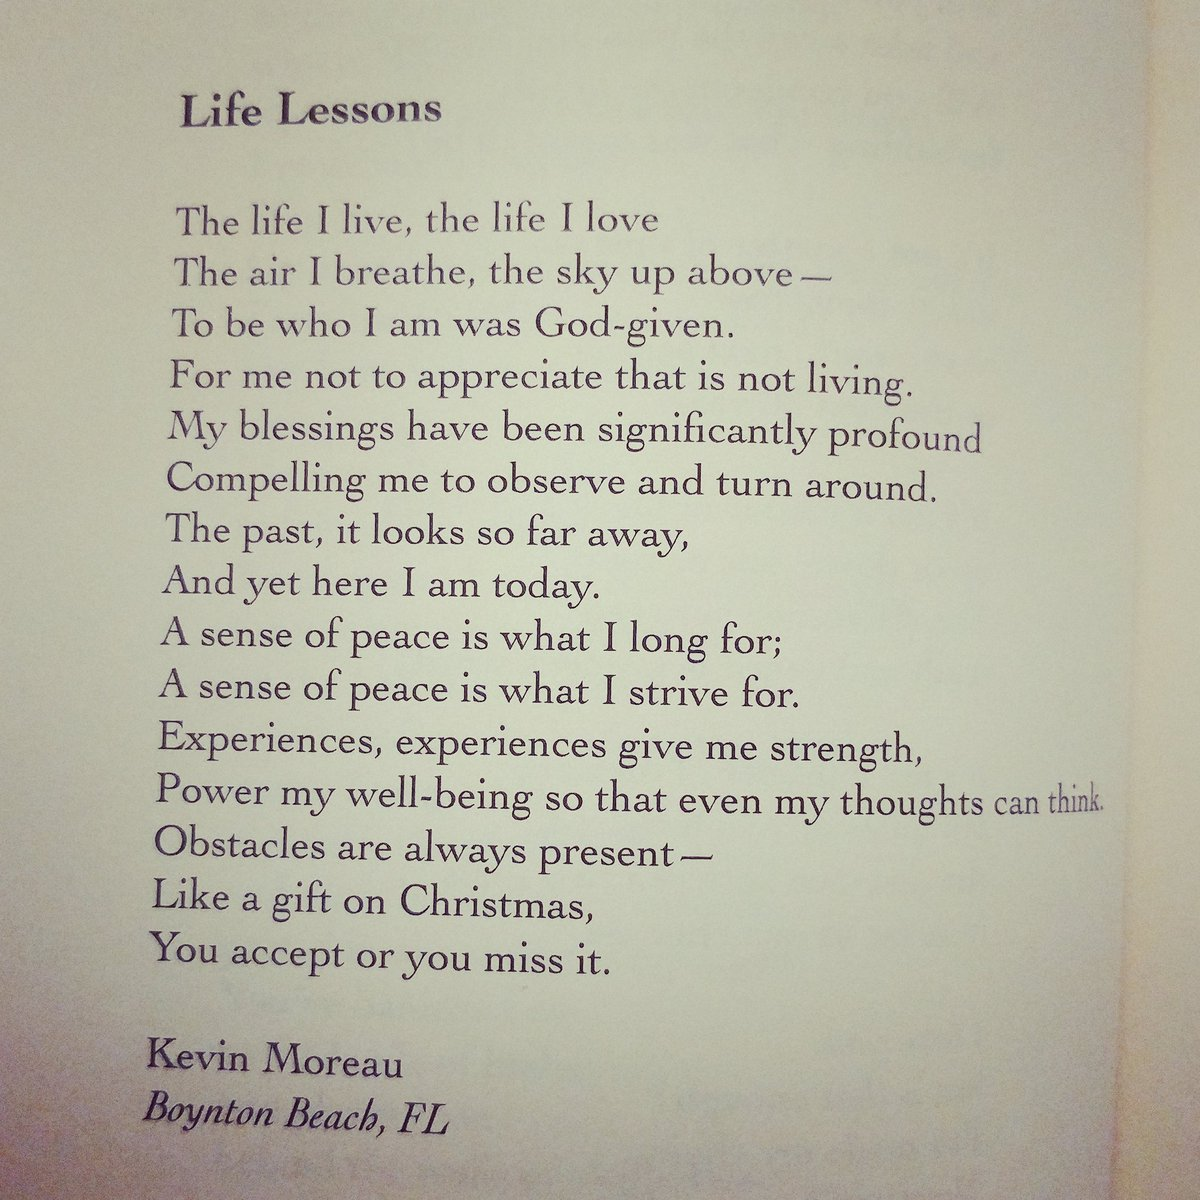 Here is a poem that I recently had published.  &quot;Life Lessons&quot;  #Poetry #Life #publishing #LIFE #lessons #love #peace #humanity #TEDtalks<br>http://pic.twitter.com/yVnaXrRO37